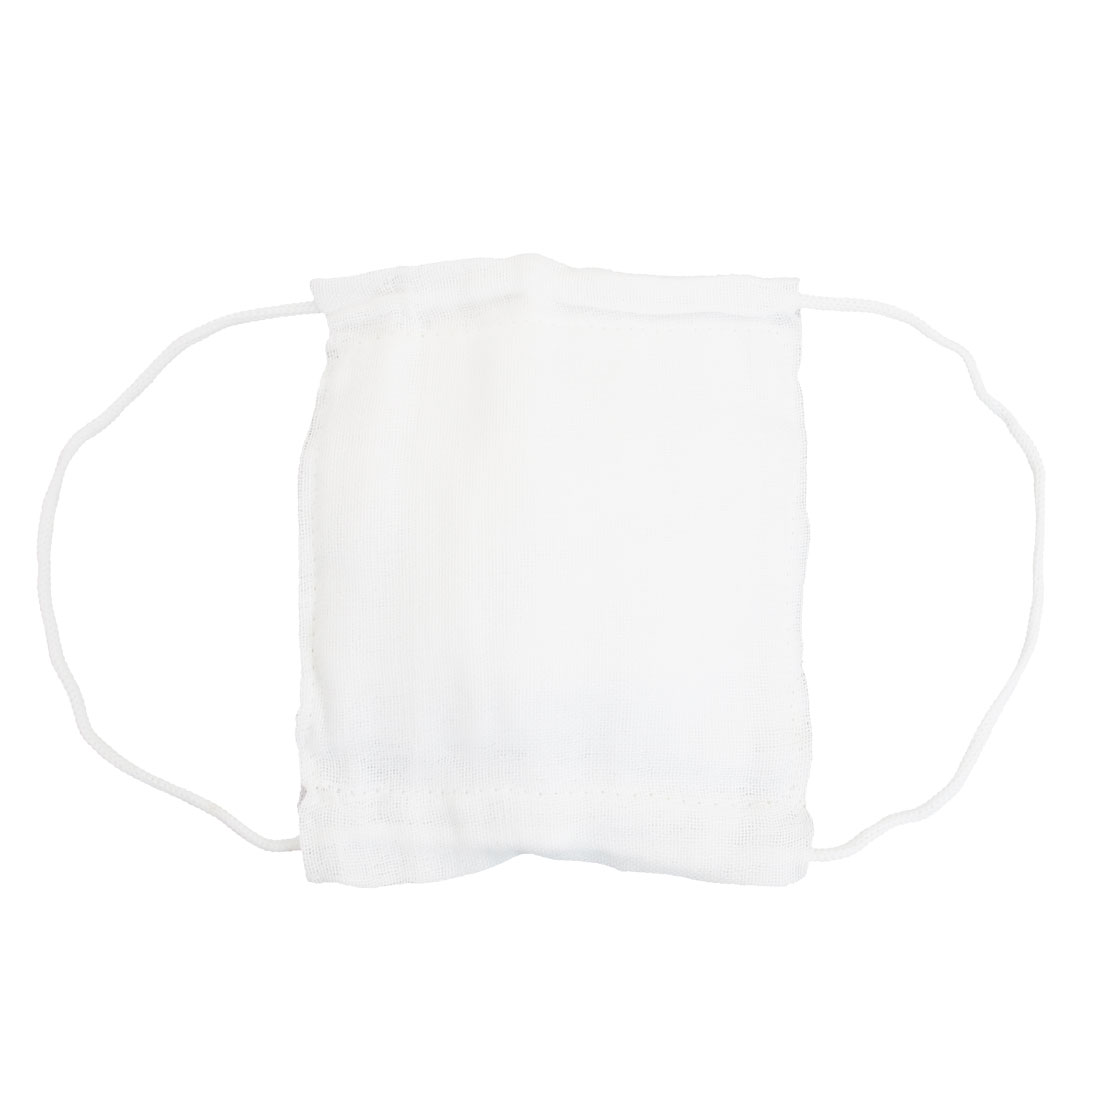 14cm x 17.5cm Washable Health White Gauze Coverd Face Mouth Mask